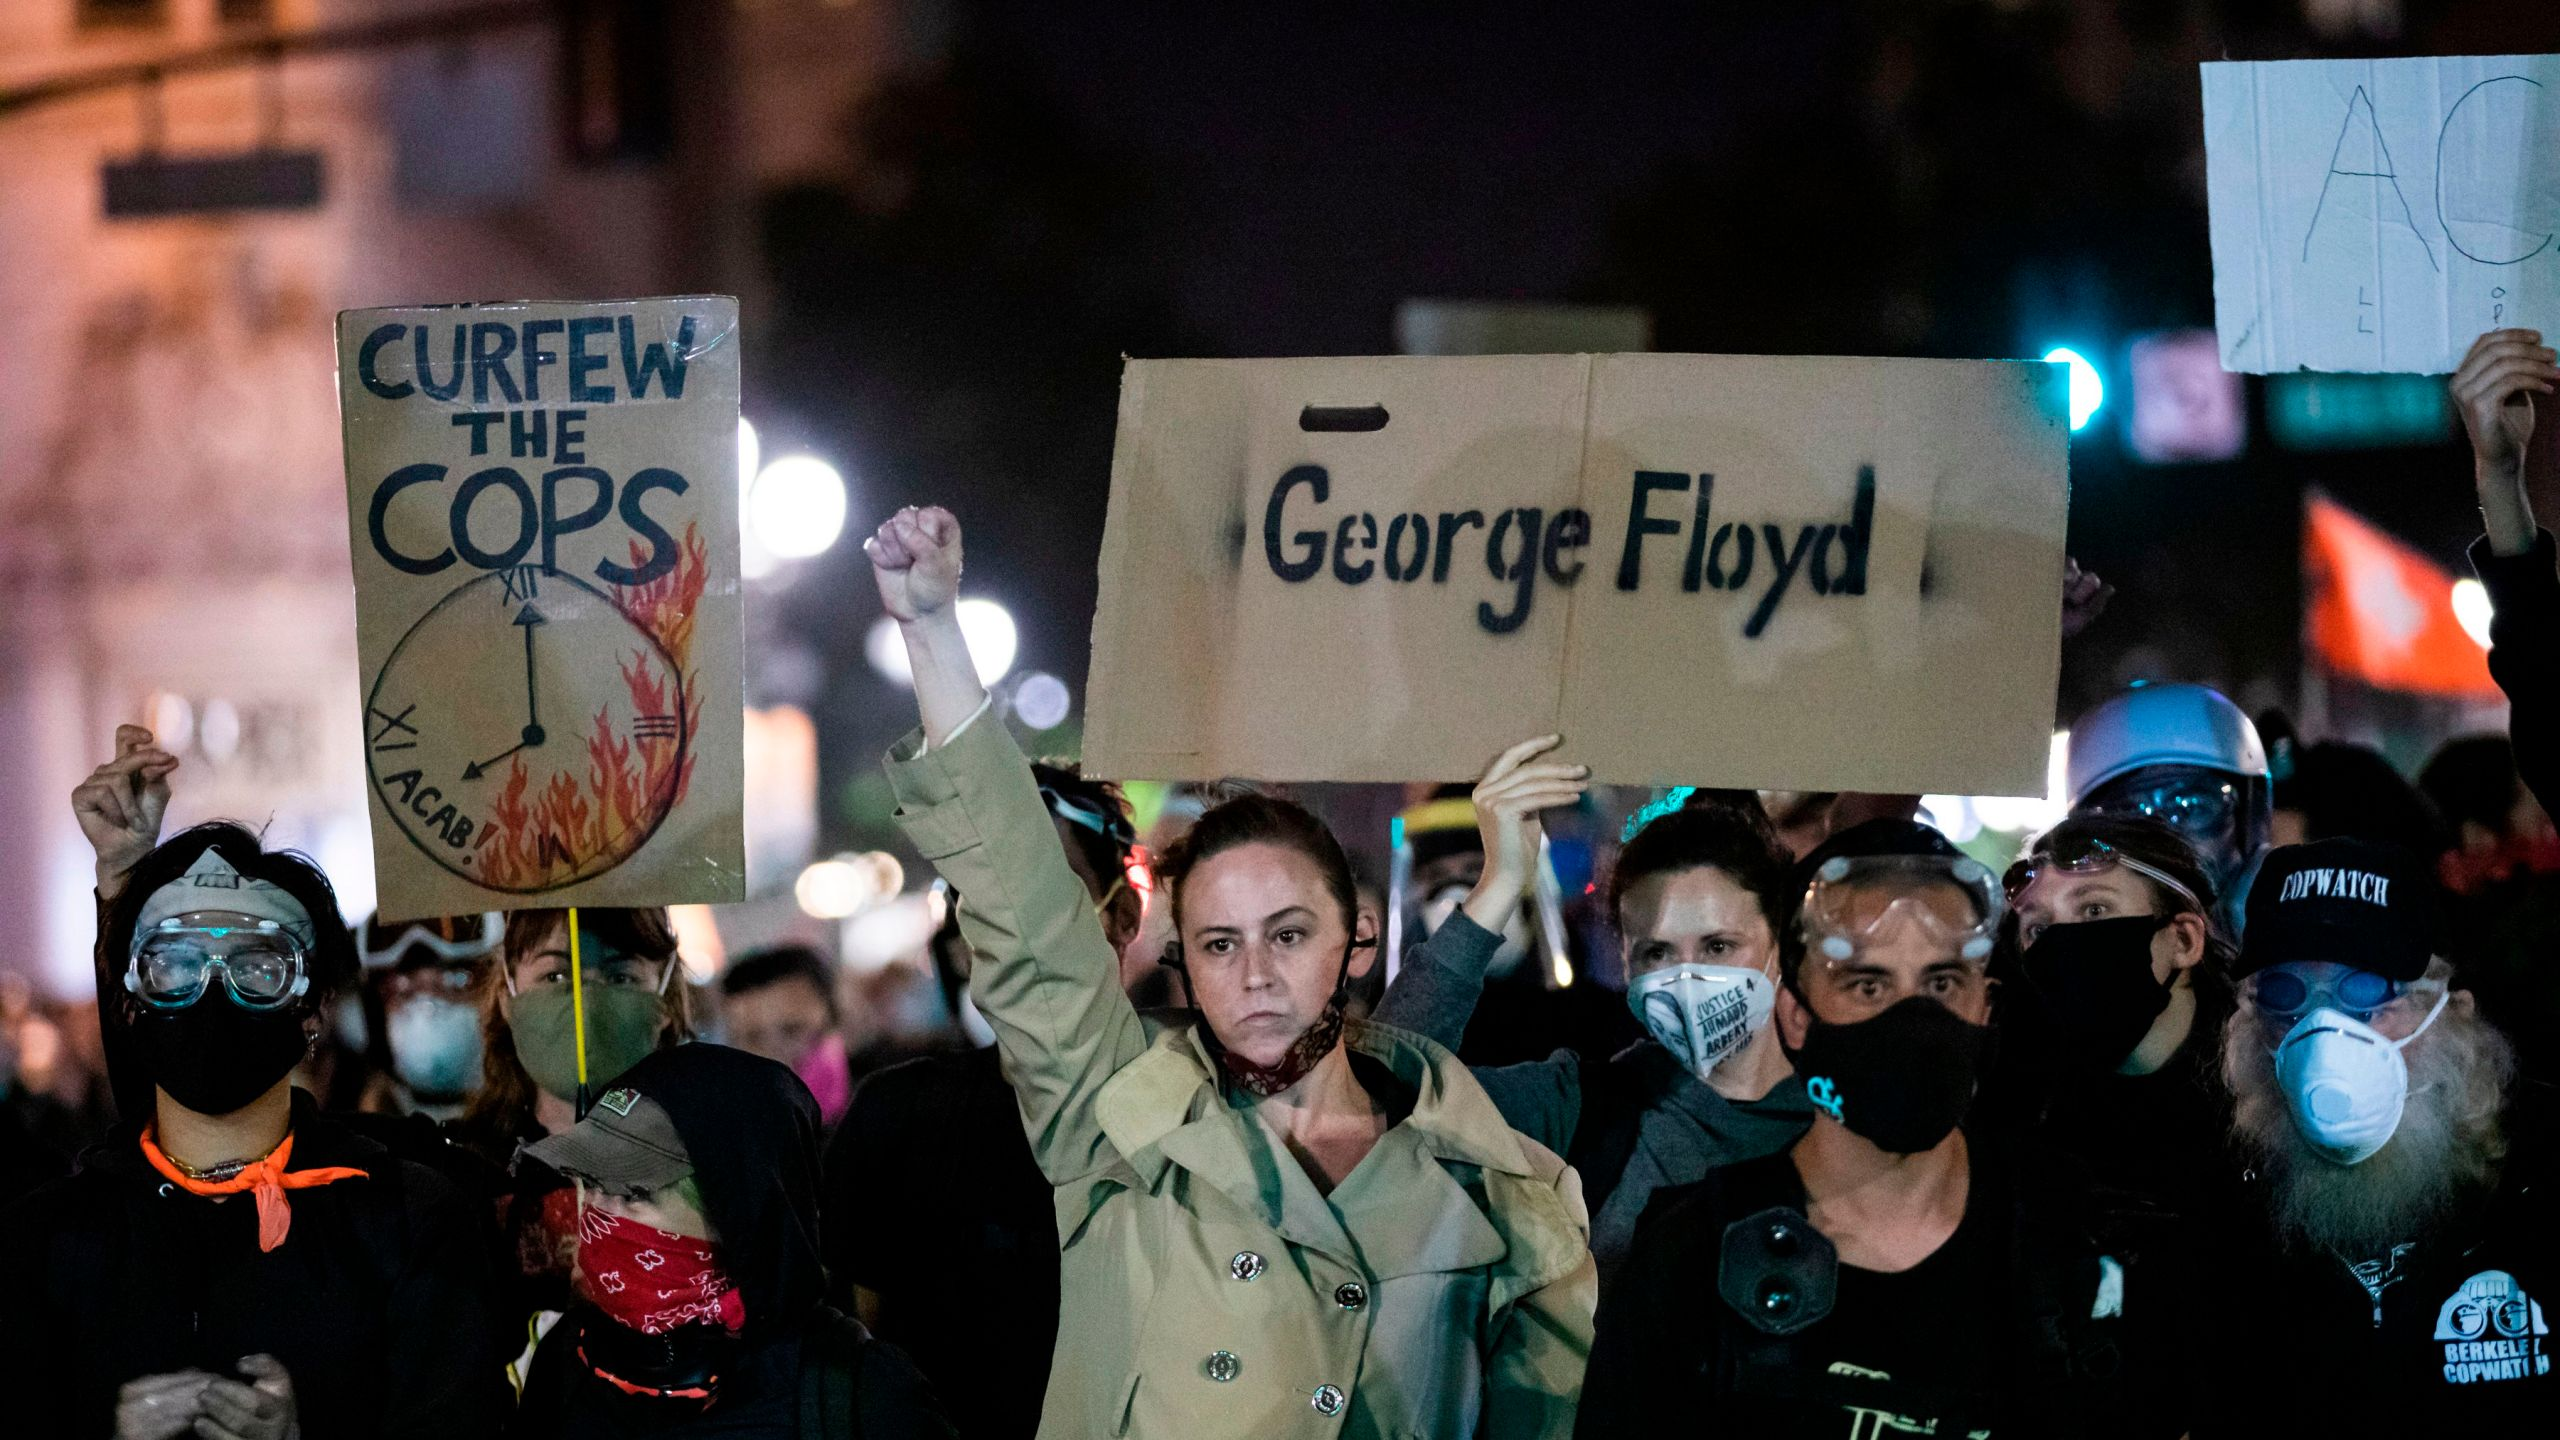 """Demonstrators attend a """"Sit Out the Curfew"""" protest against the death of George Floyd who died on May 25 in Minneapolis whilst in police custody, along a street in Oakland, California on June 3, 2020. (PHILIP PACHECO/AFP via Getty Images)"""